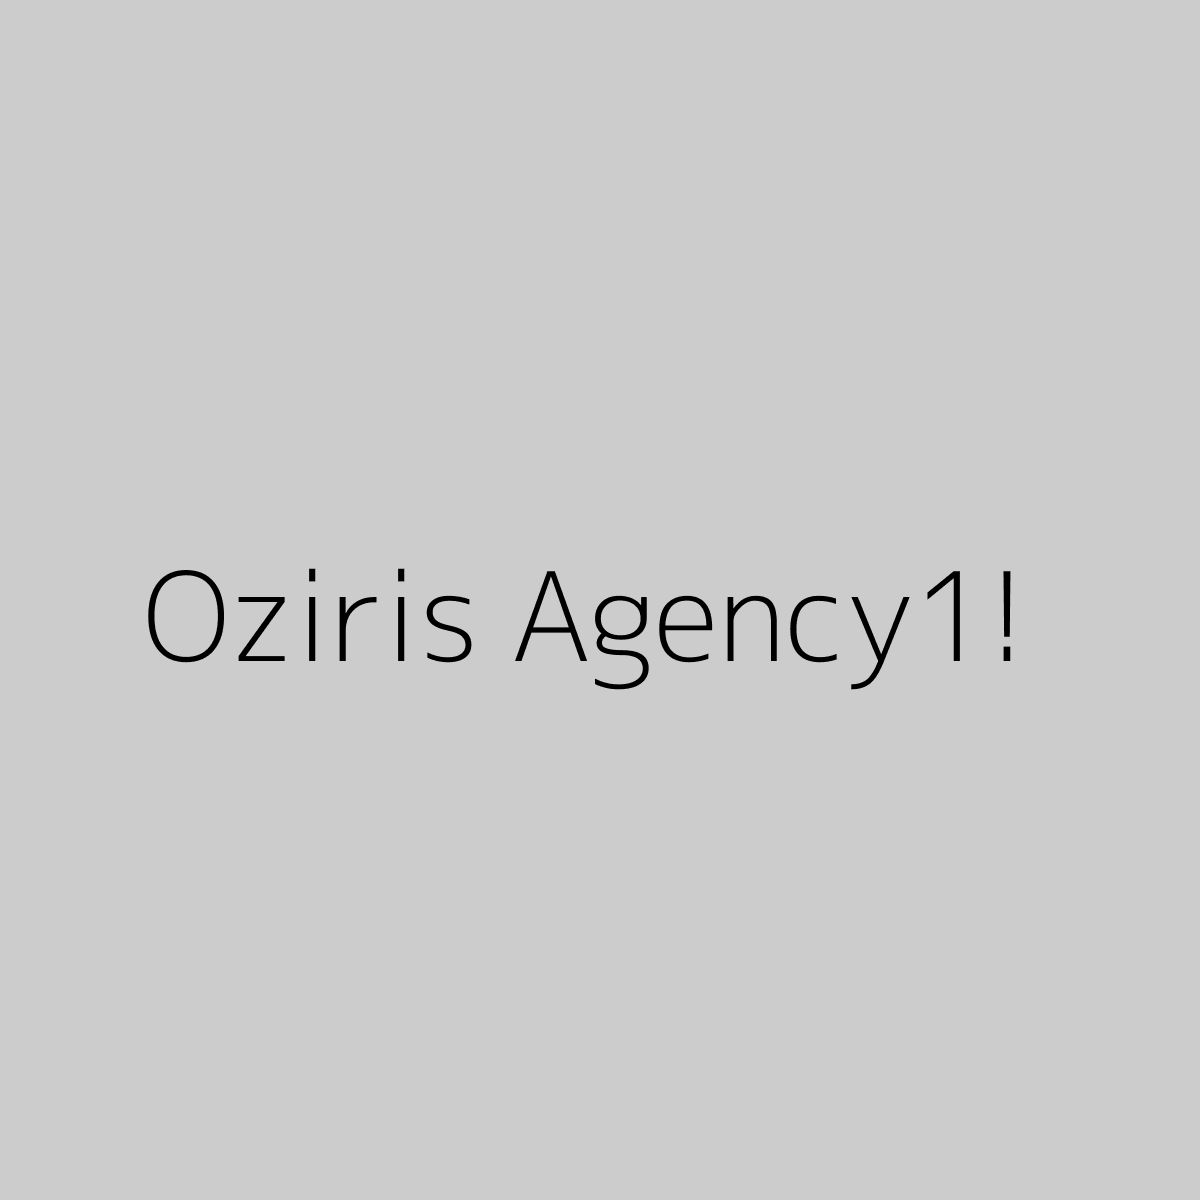 1200x1200&text=Oziris+Agency1!